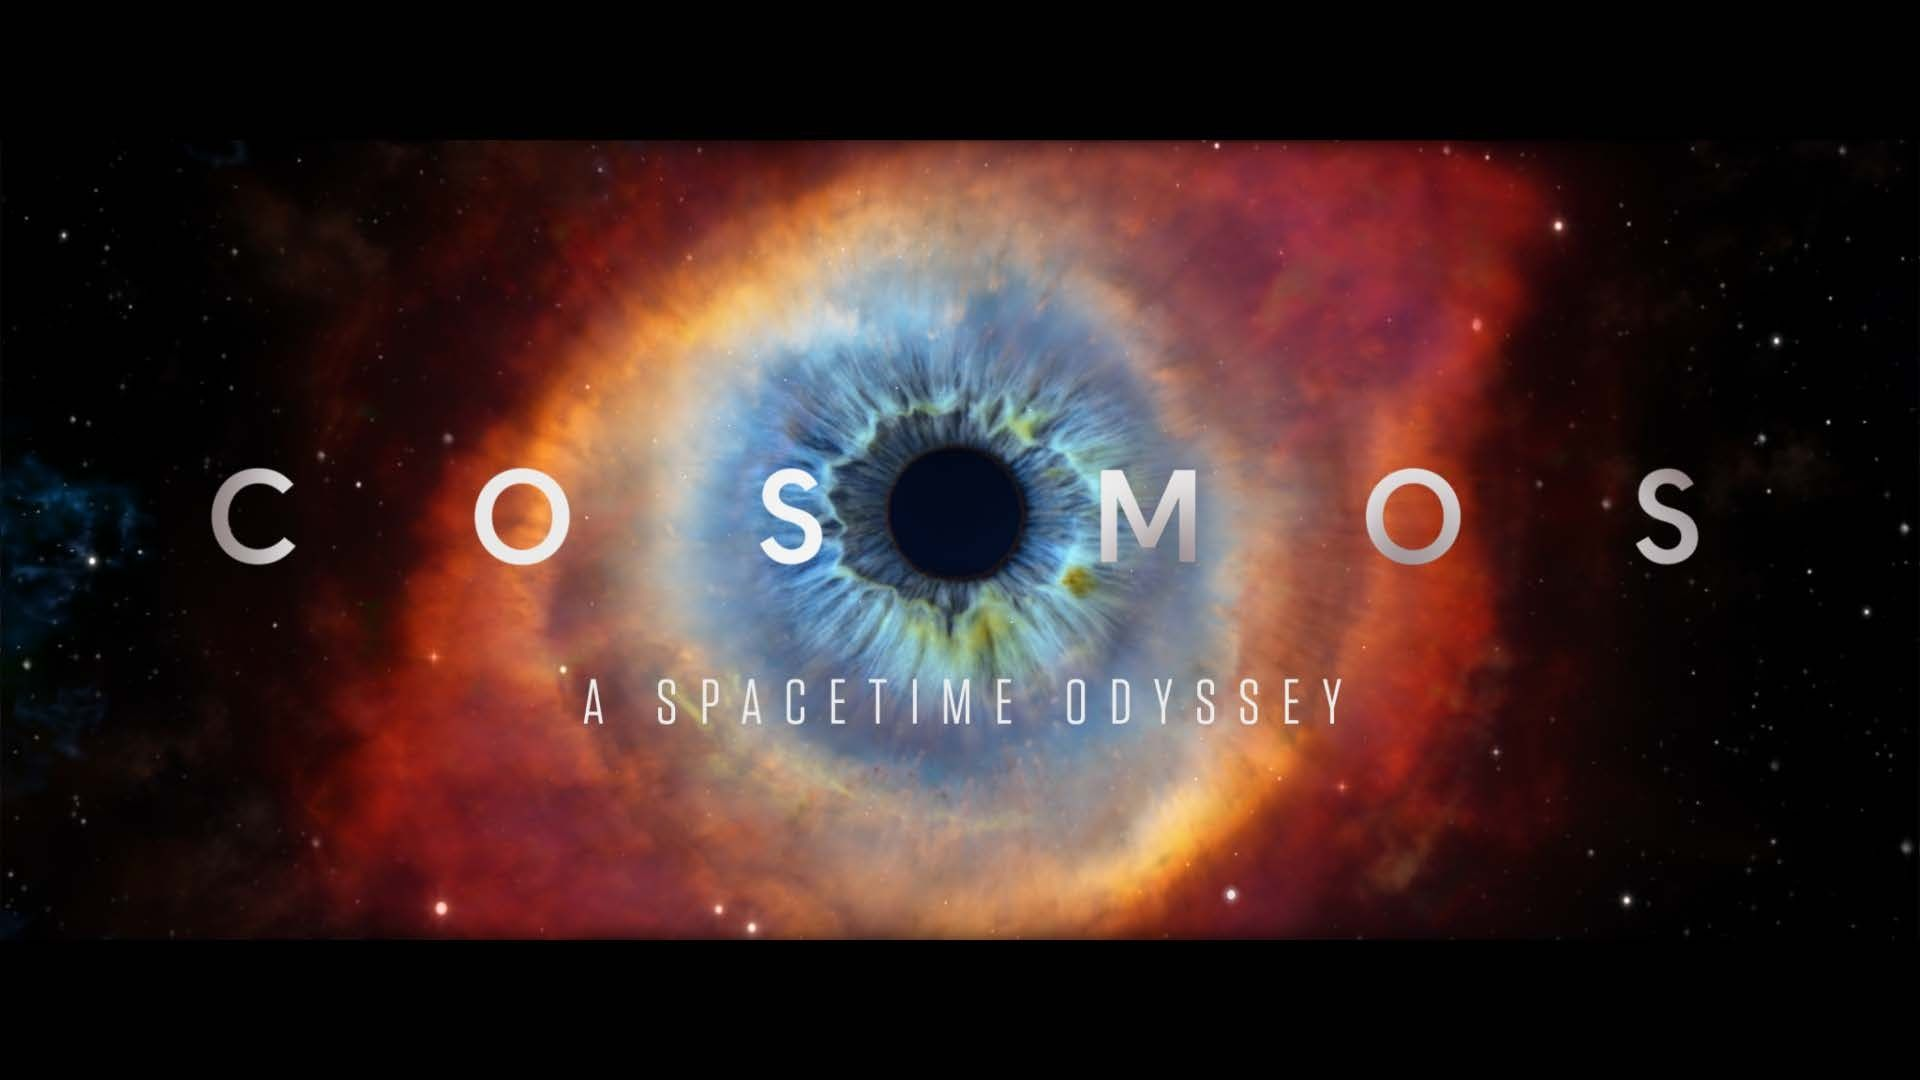 Free Cosmos A Spacetime Odyssey Wallpapers Apk Download For Design